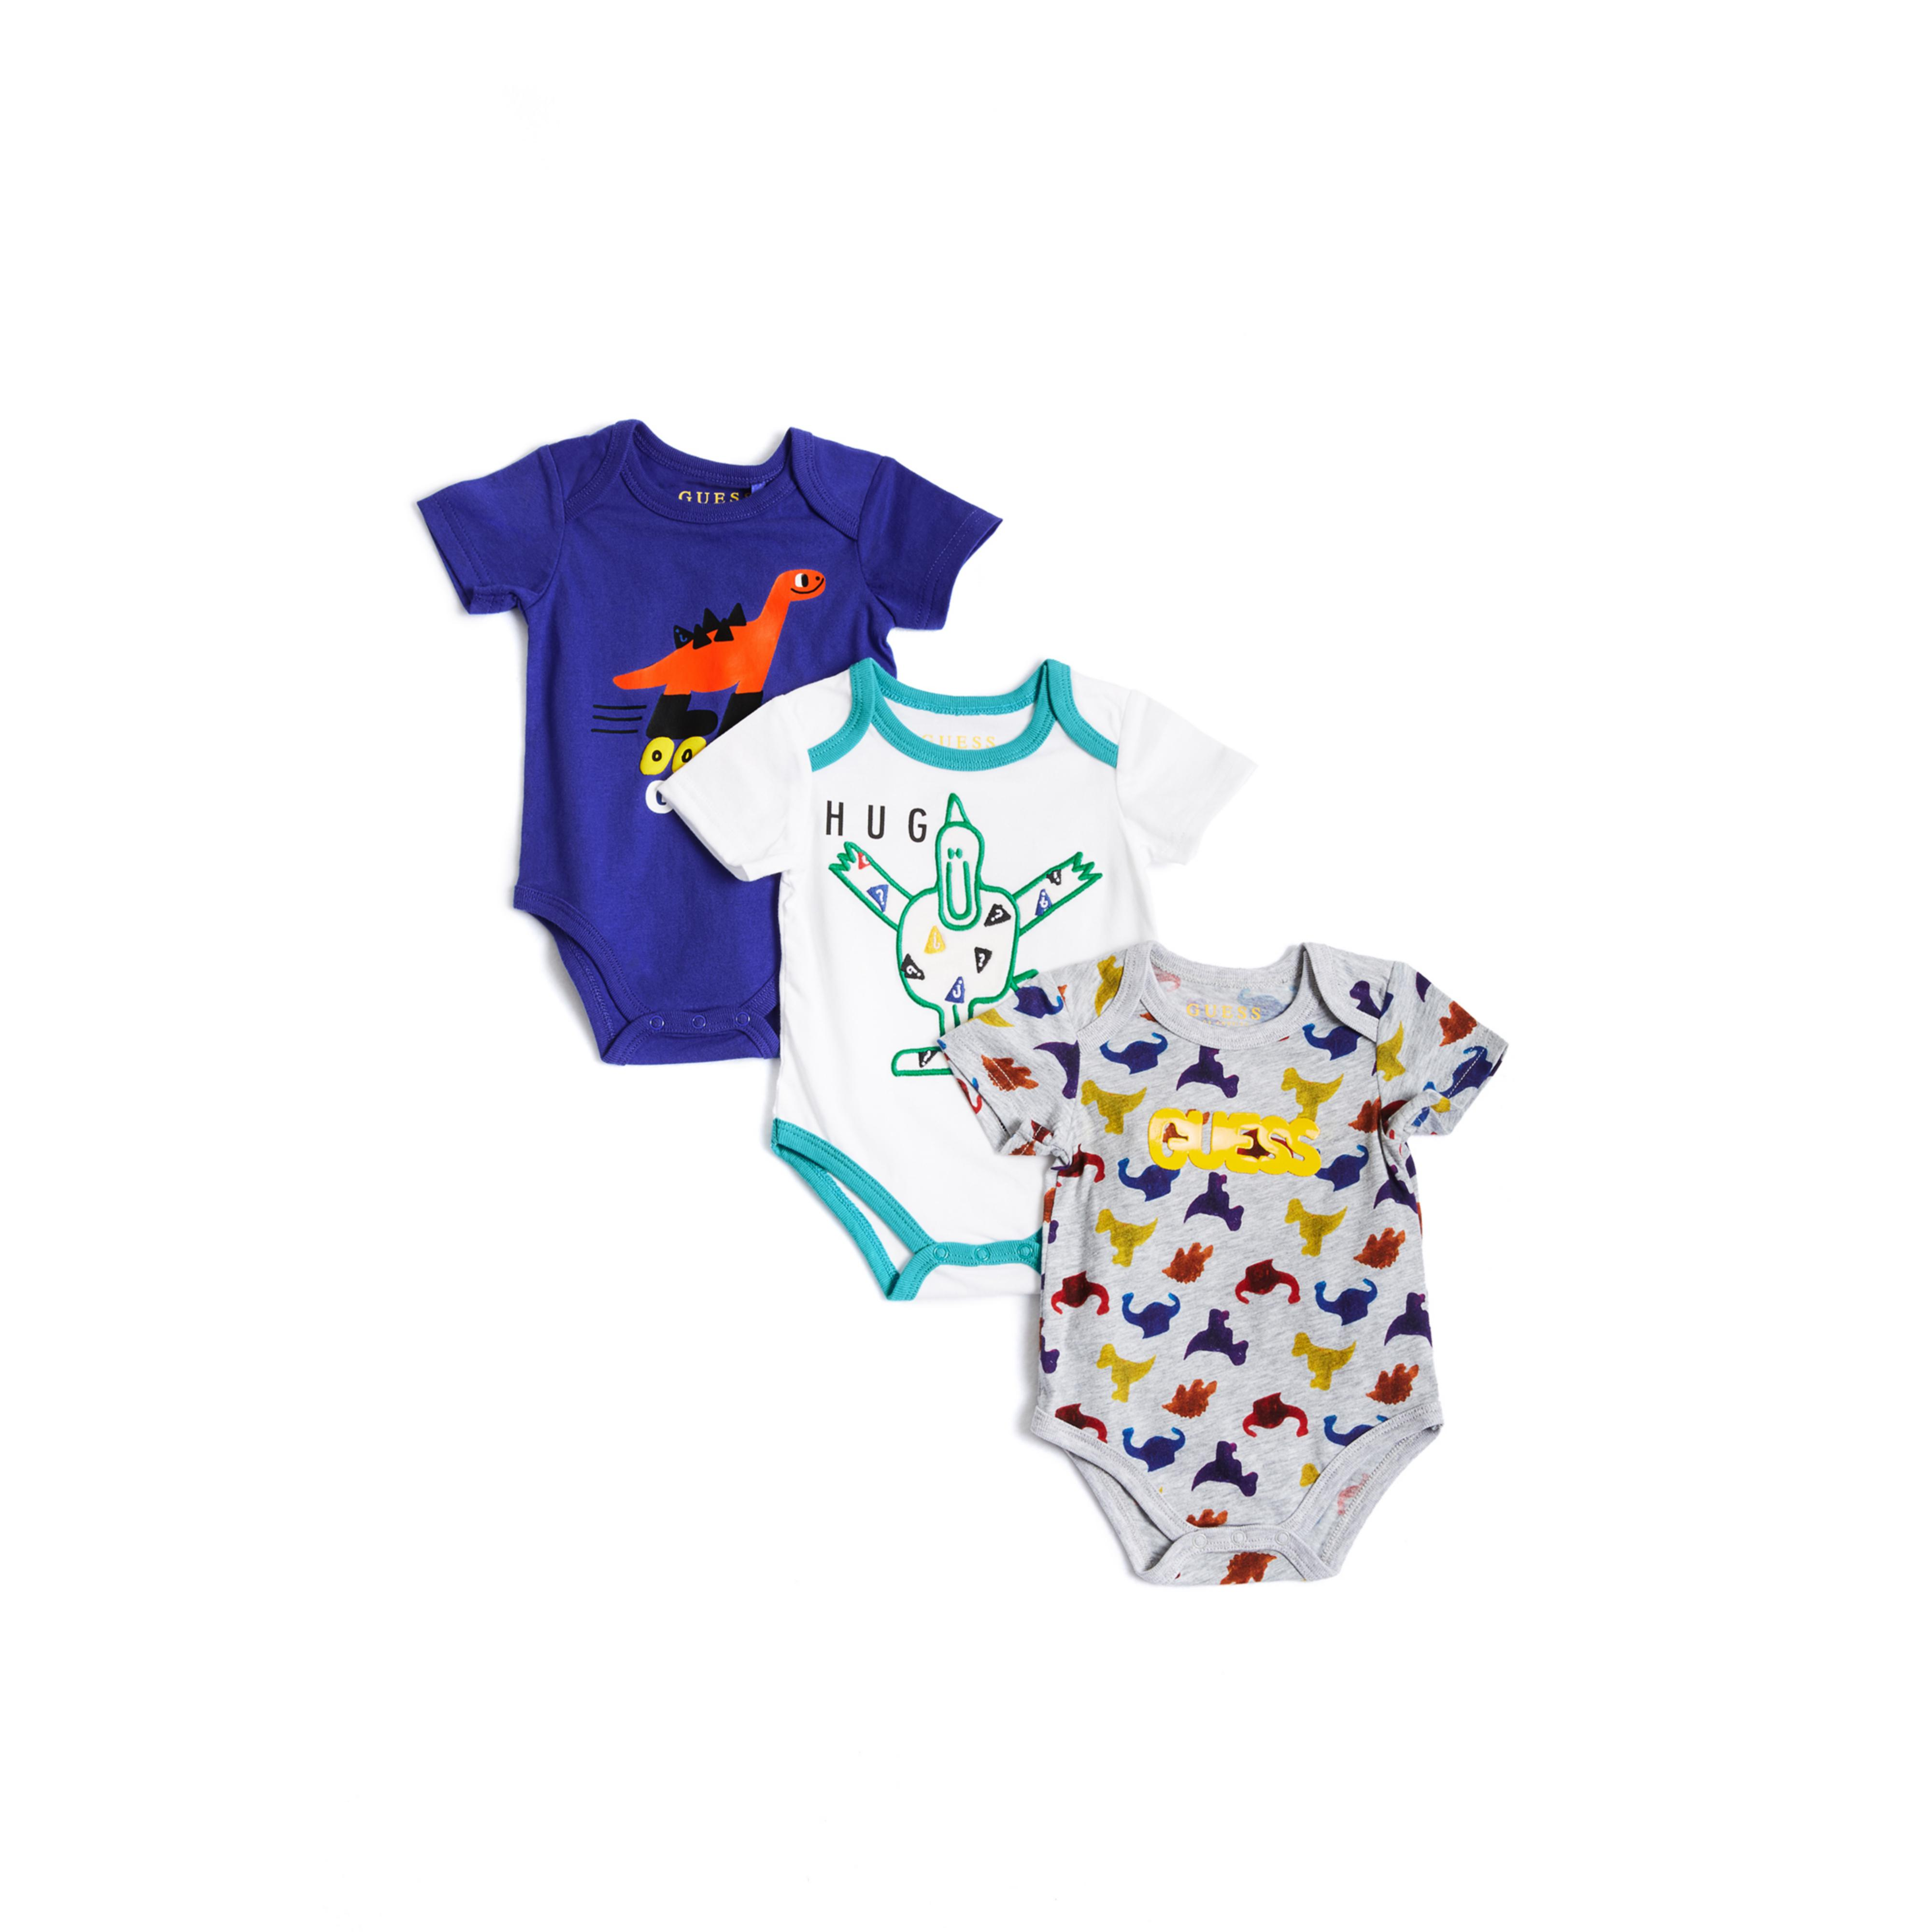 Lyst Guess 3 piece Bodysuit Set 0 24m in Blue